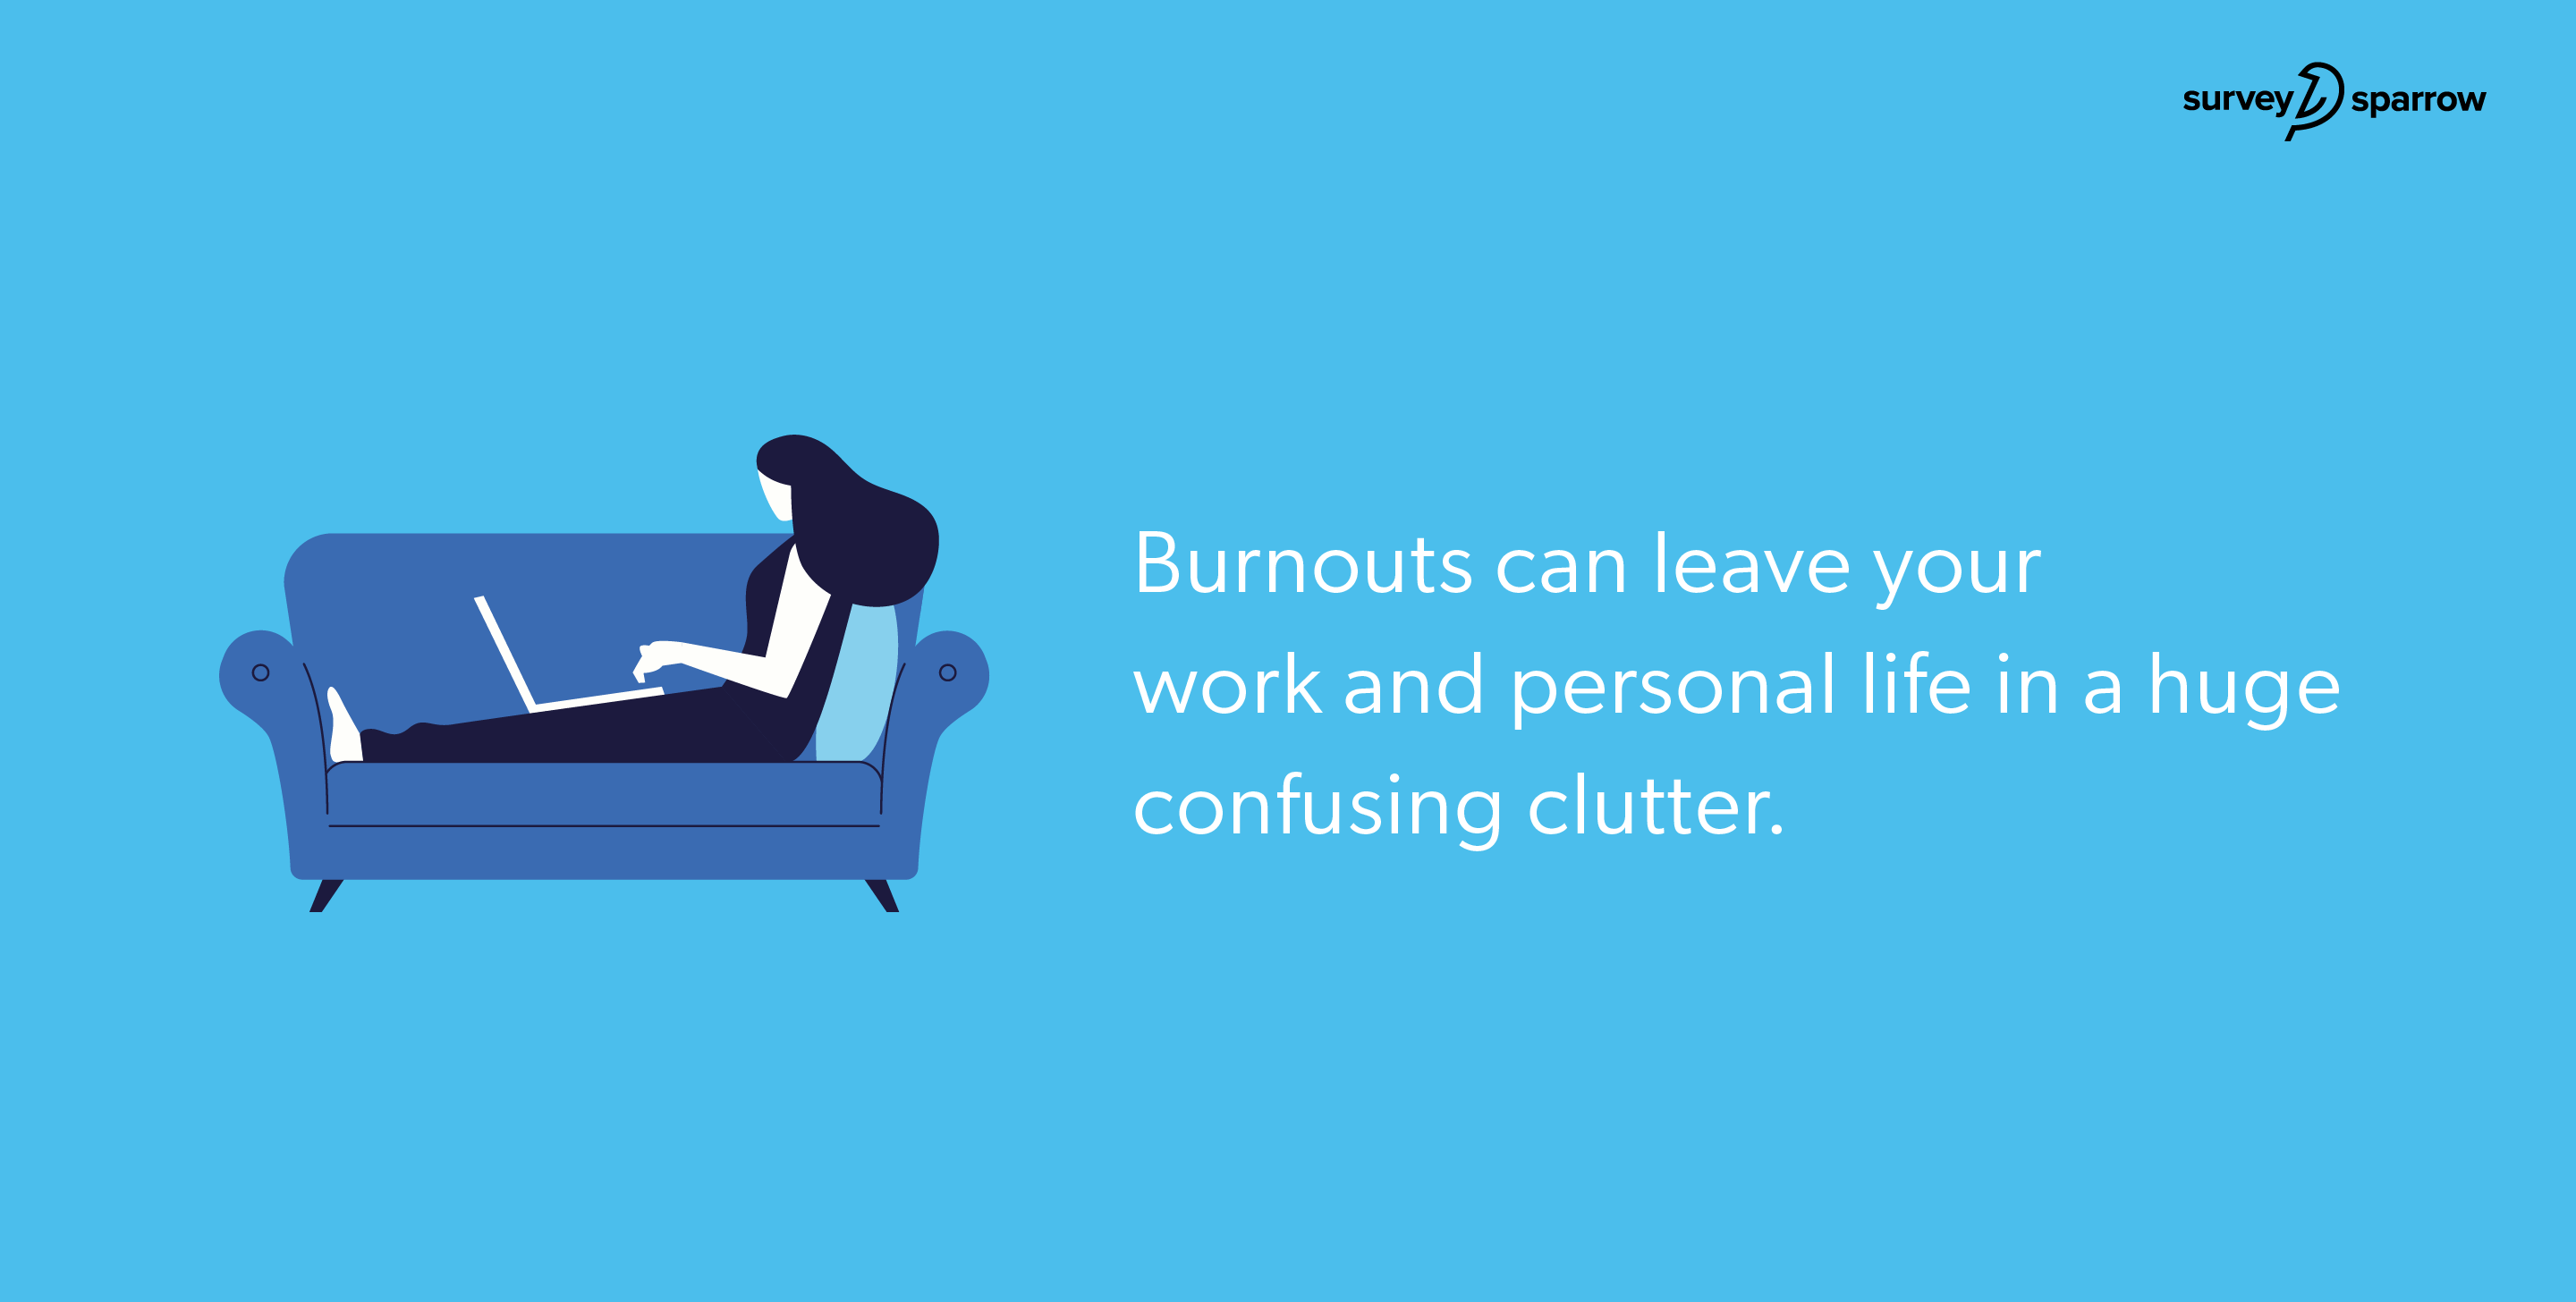 Burnouts can leave your work and personal life in a huge confusing clutter.